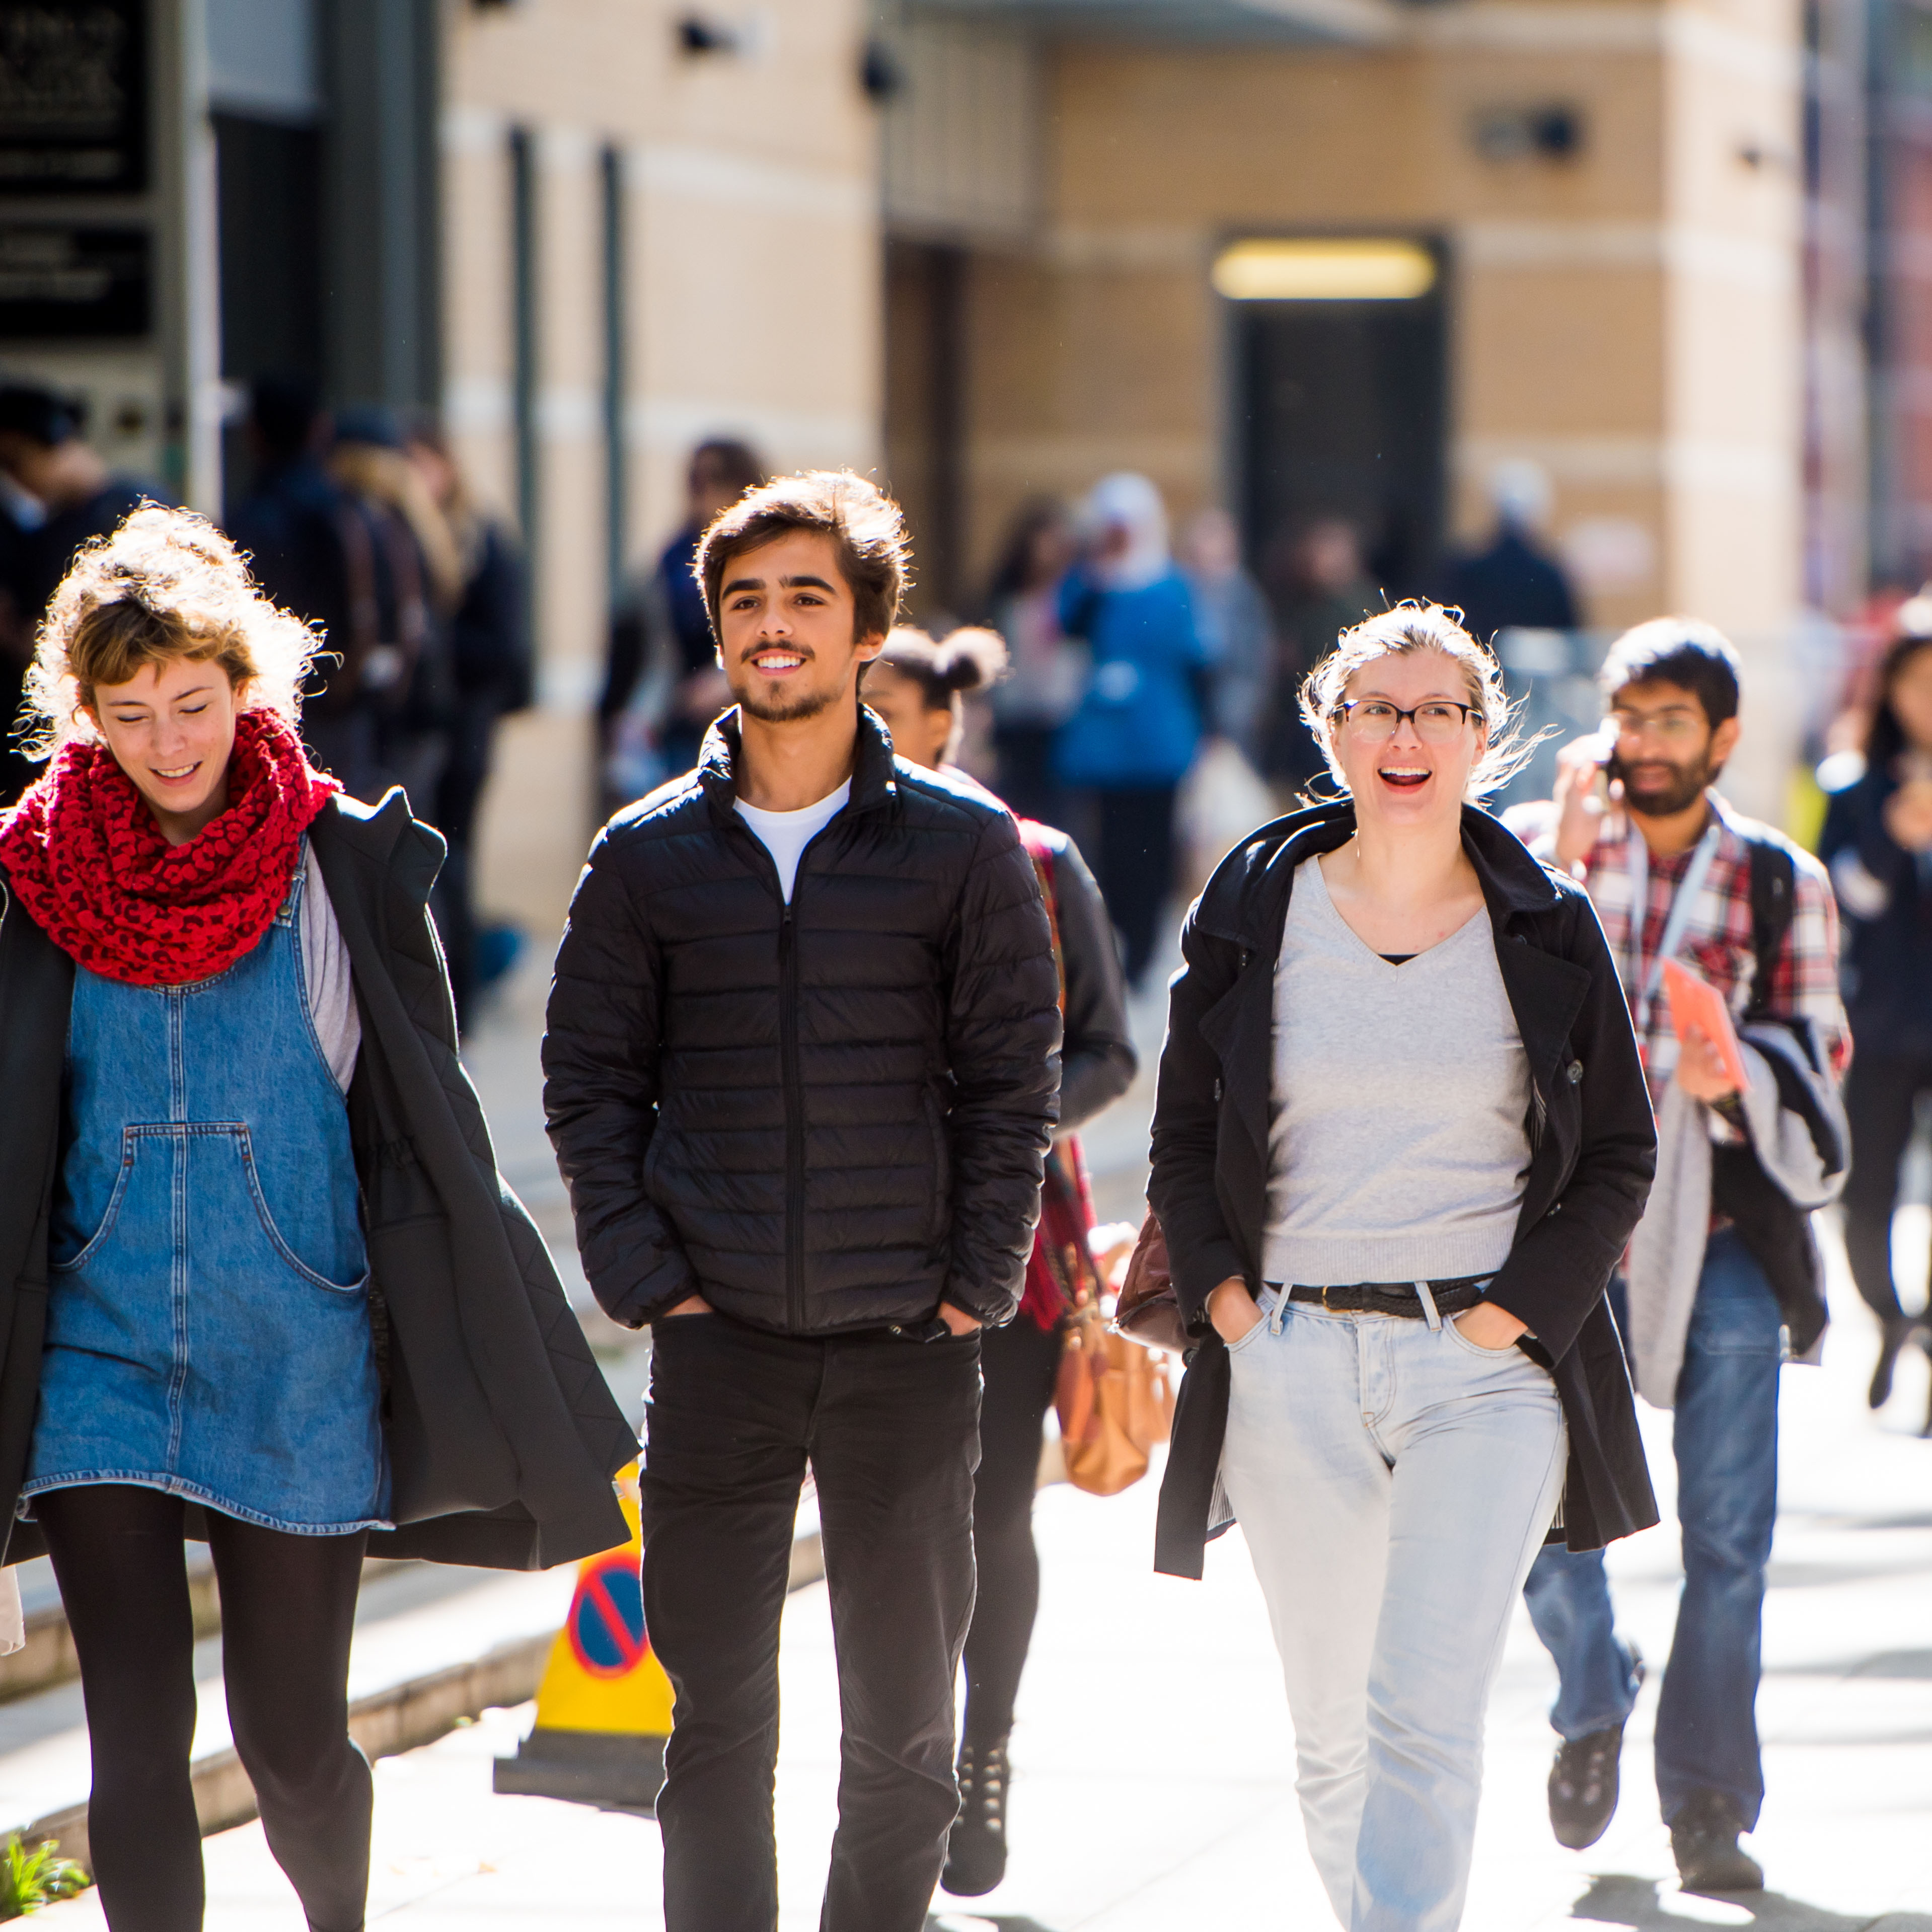 Most popular universities and programmes to study ...